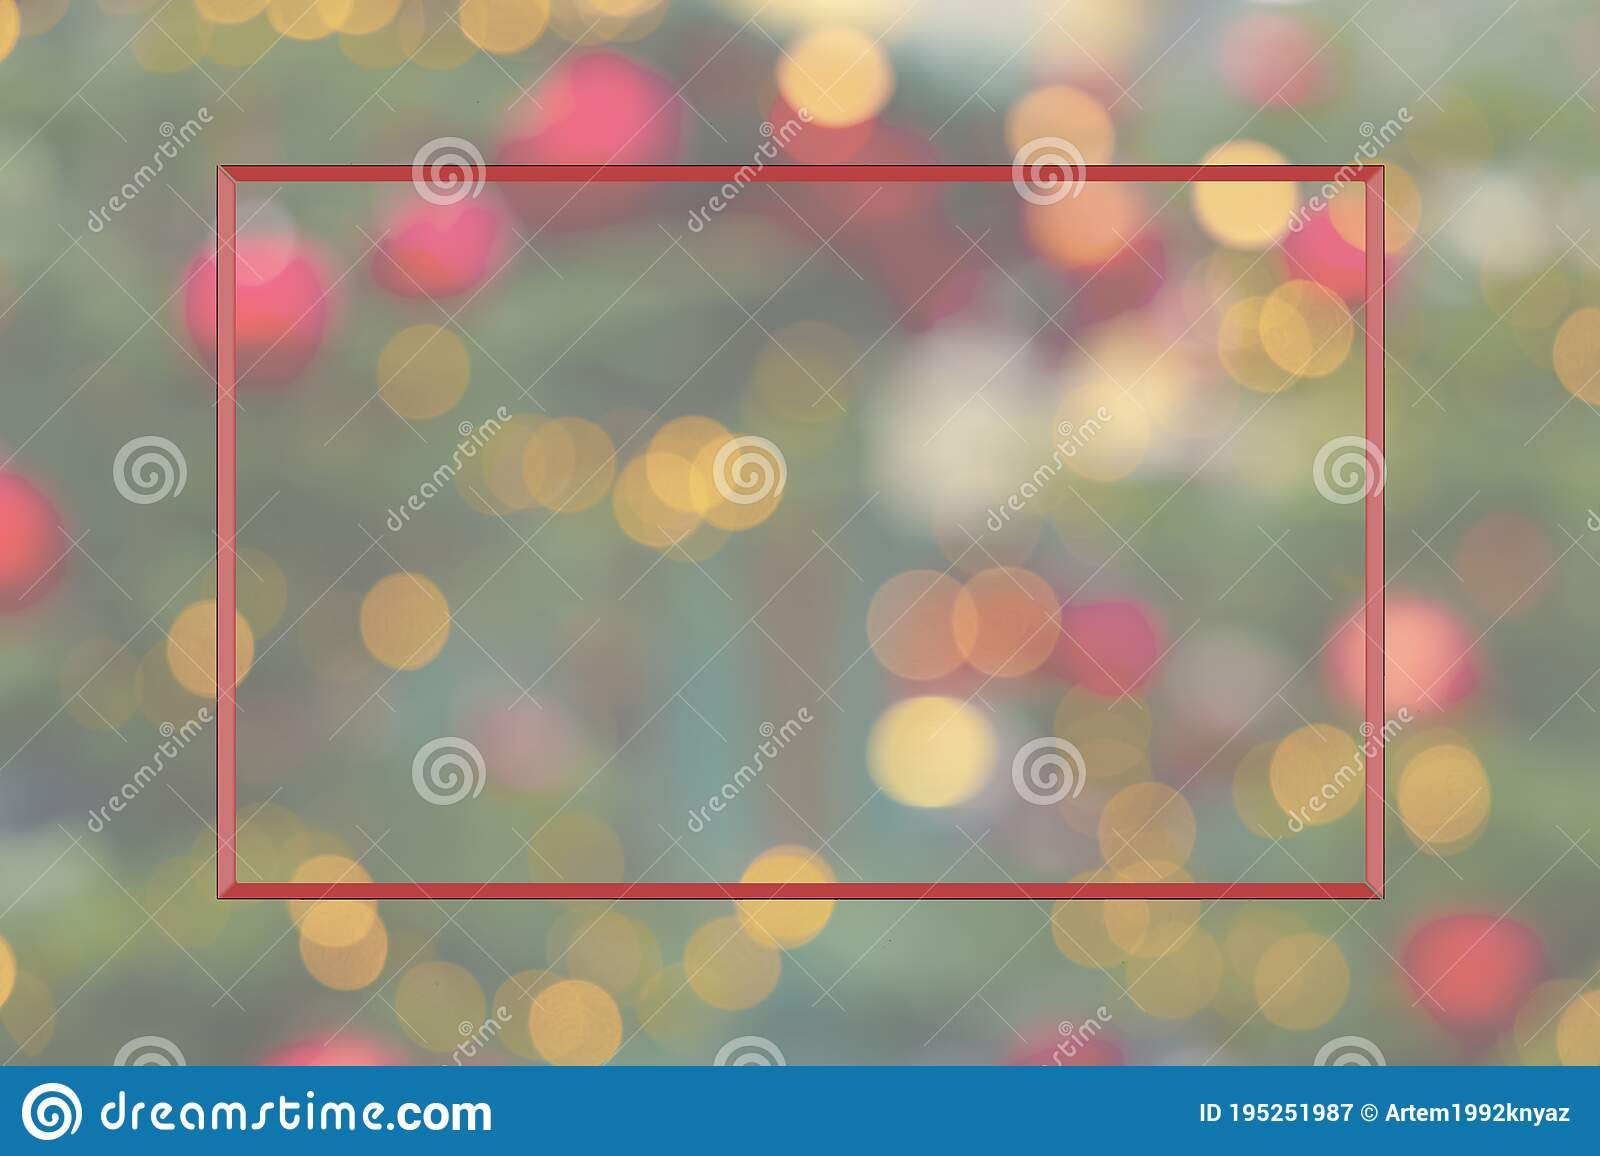 christmas simple background wallpaper pattern frame shape empty copy space your text here blurred illumination bokeh